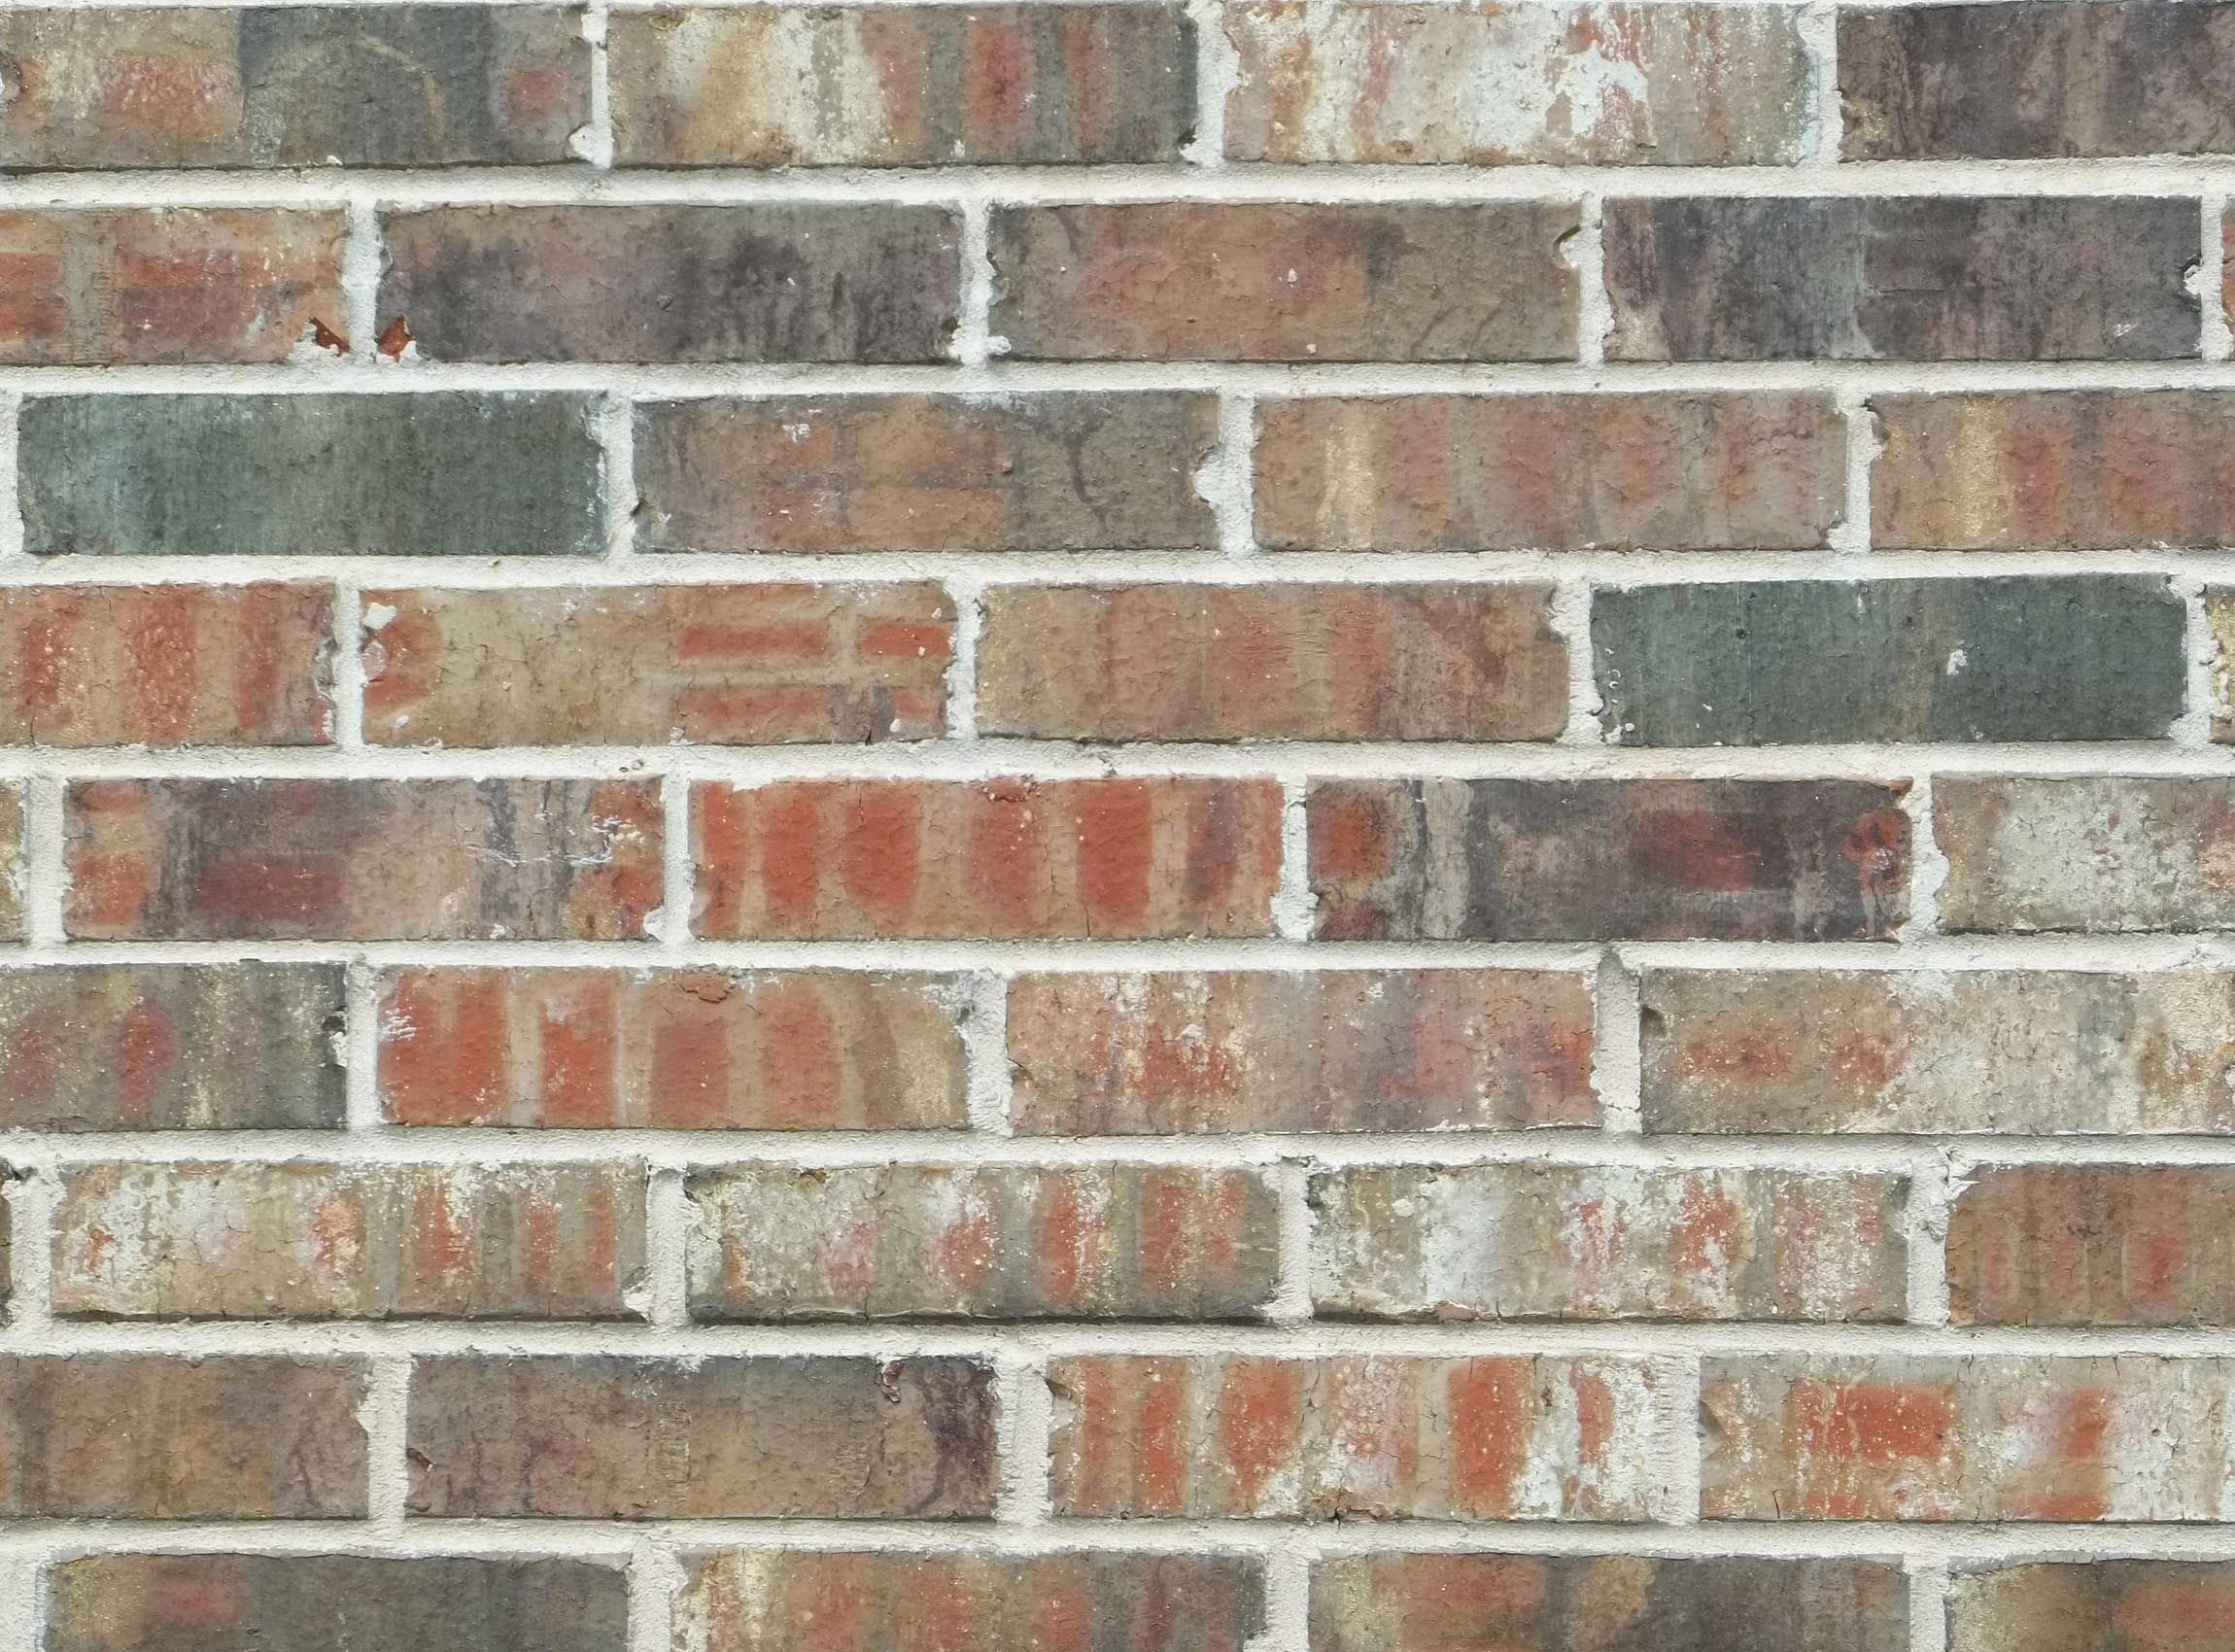 Brick colors name of brick cromwell ks manufacturer cbc - How to change the color of brick exterior ...